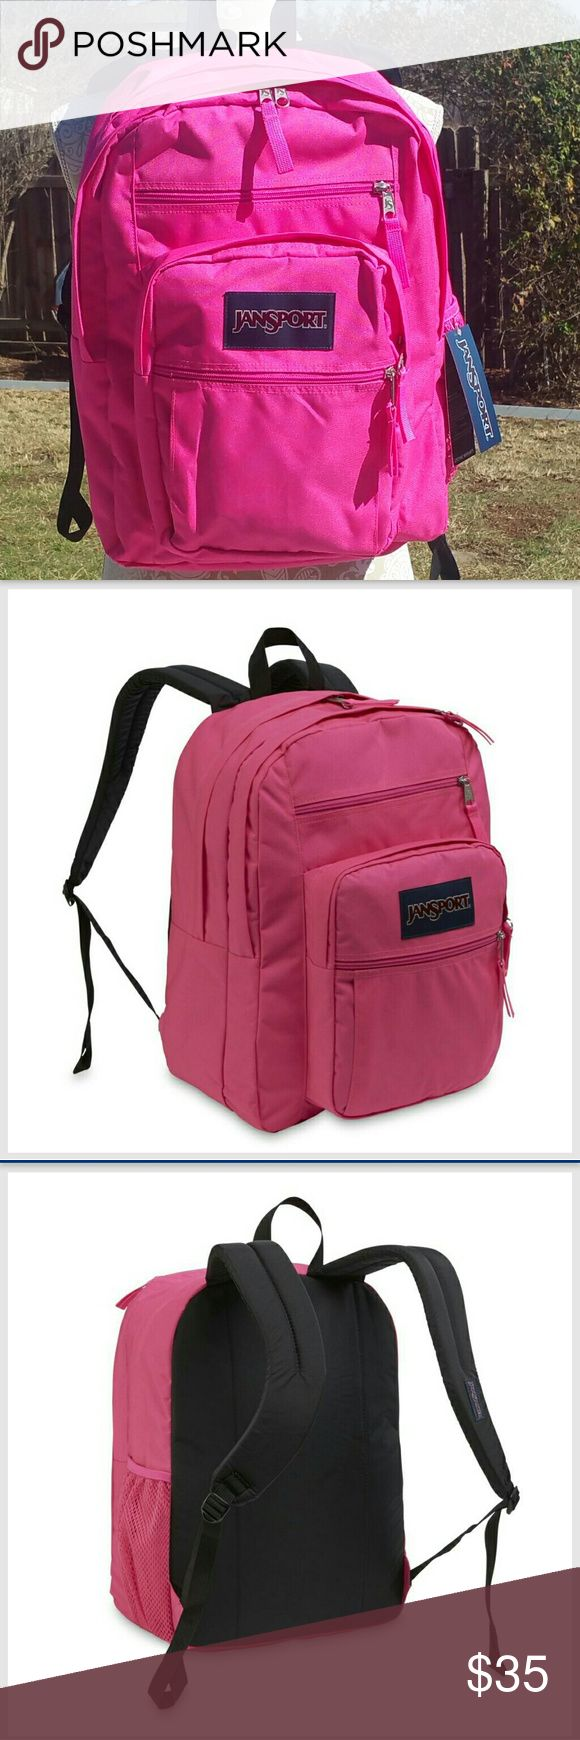 🎀Neon PINK💖 BIG STUDENT🎒 Brand new with tags jansport backpack. Lifetime warranty. Very stylish and cool color! Gear for everyday life ! Features: two main zipper compartments for all your large items. A front gear pocket and side cellphone pocket keep your electronics organized, while an expandable front pocket puts essentials at the ready. S-curve shoulder straps and a padded back ensure ergonomic comfort. Great Deal! Retail price $65. Jansport Bags Backpacks